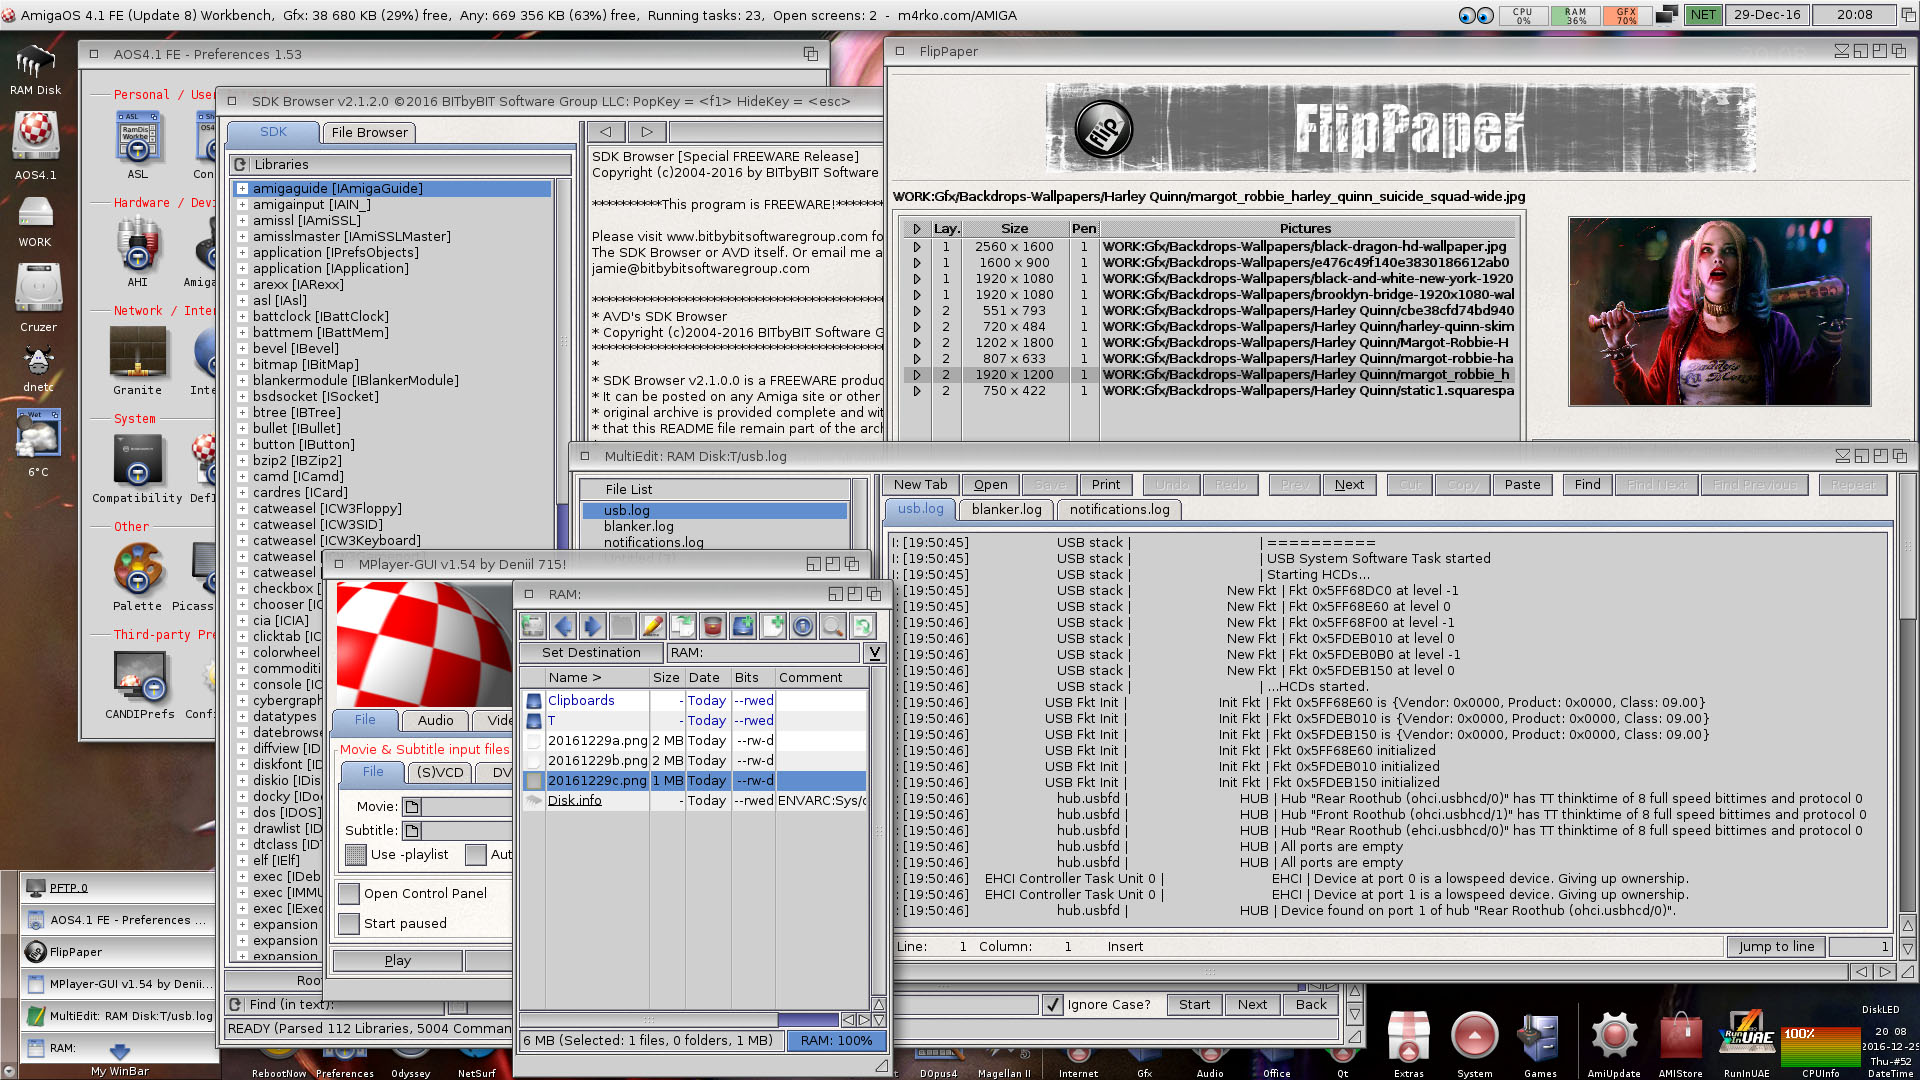 A bunch of apps in AmigaOS 4.1 FE